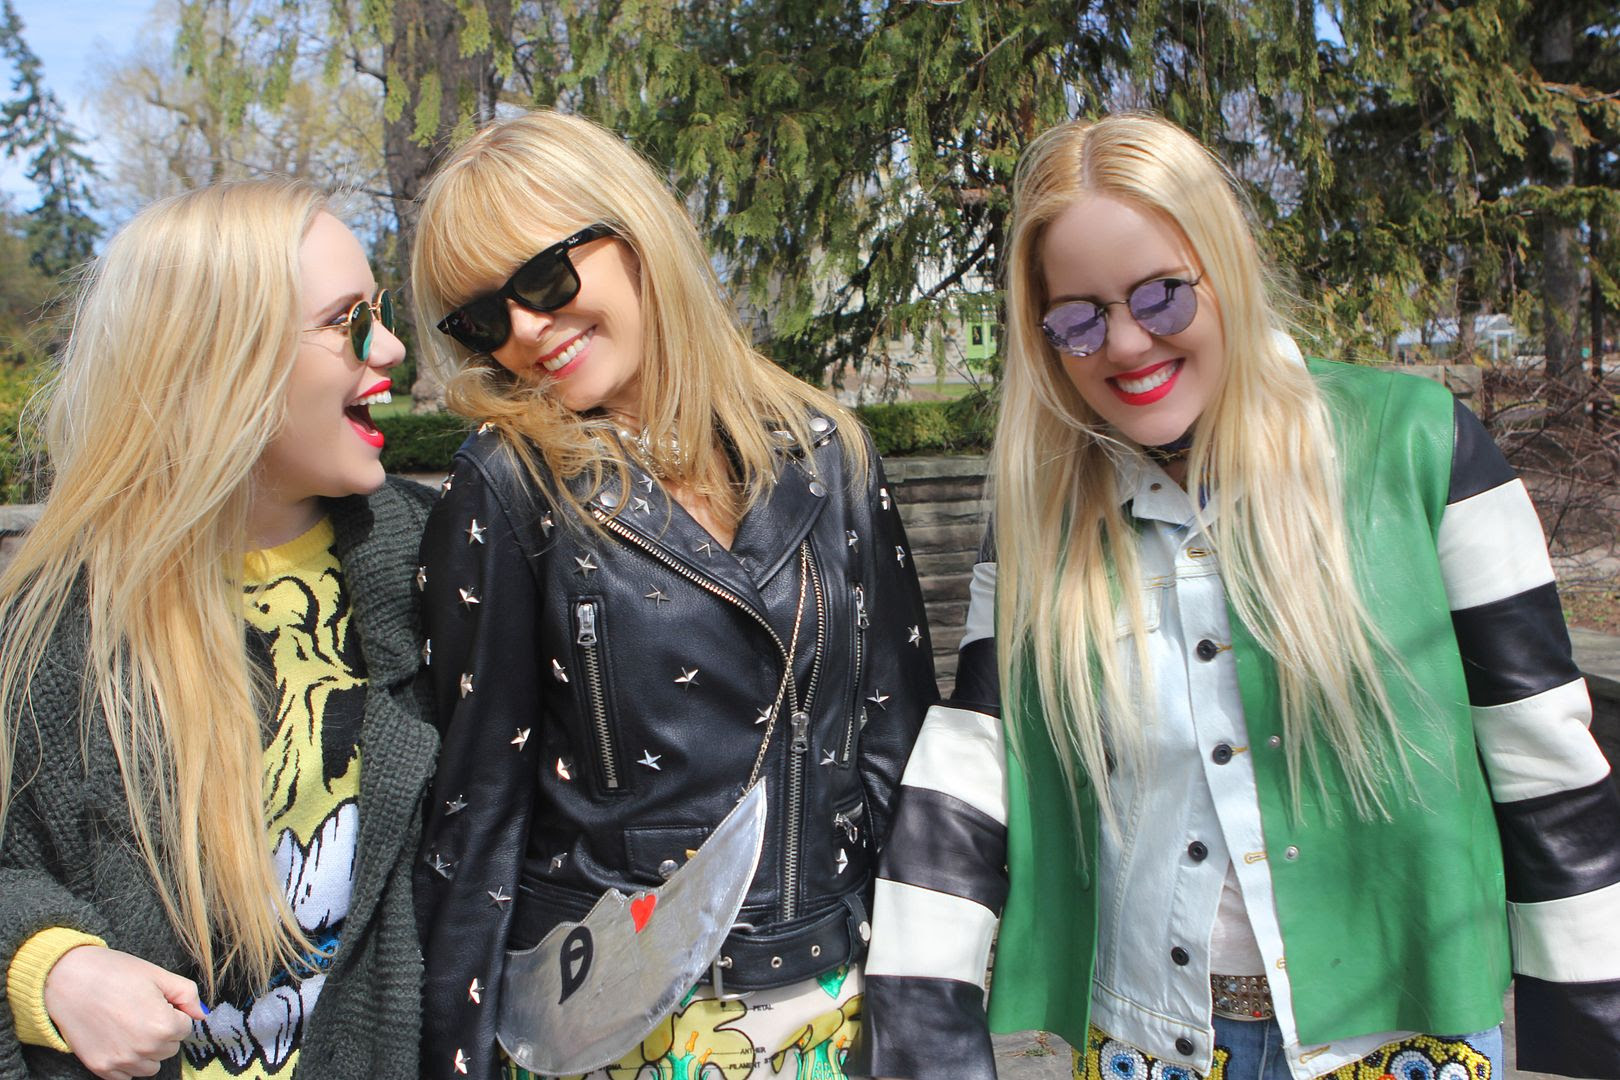 photo itstartedwithmom-beckermans-sisters-twins-streetstyle-momanddaughter-acne-chanel-raybans-sunglasshut_zpsdgywawjw.jpg